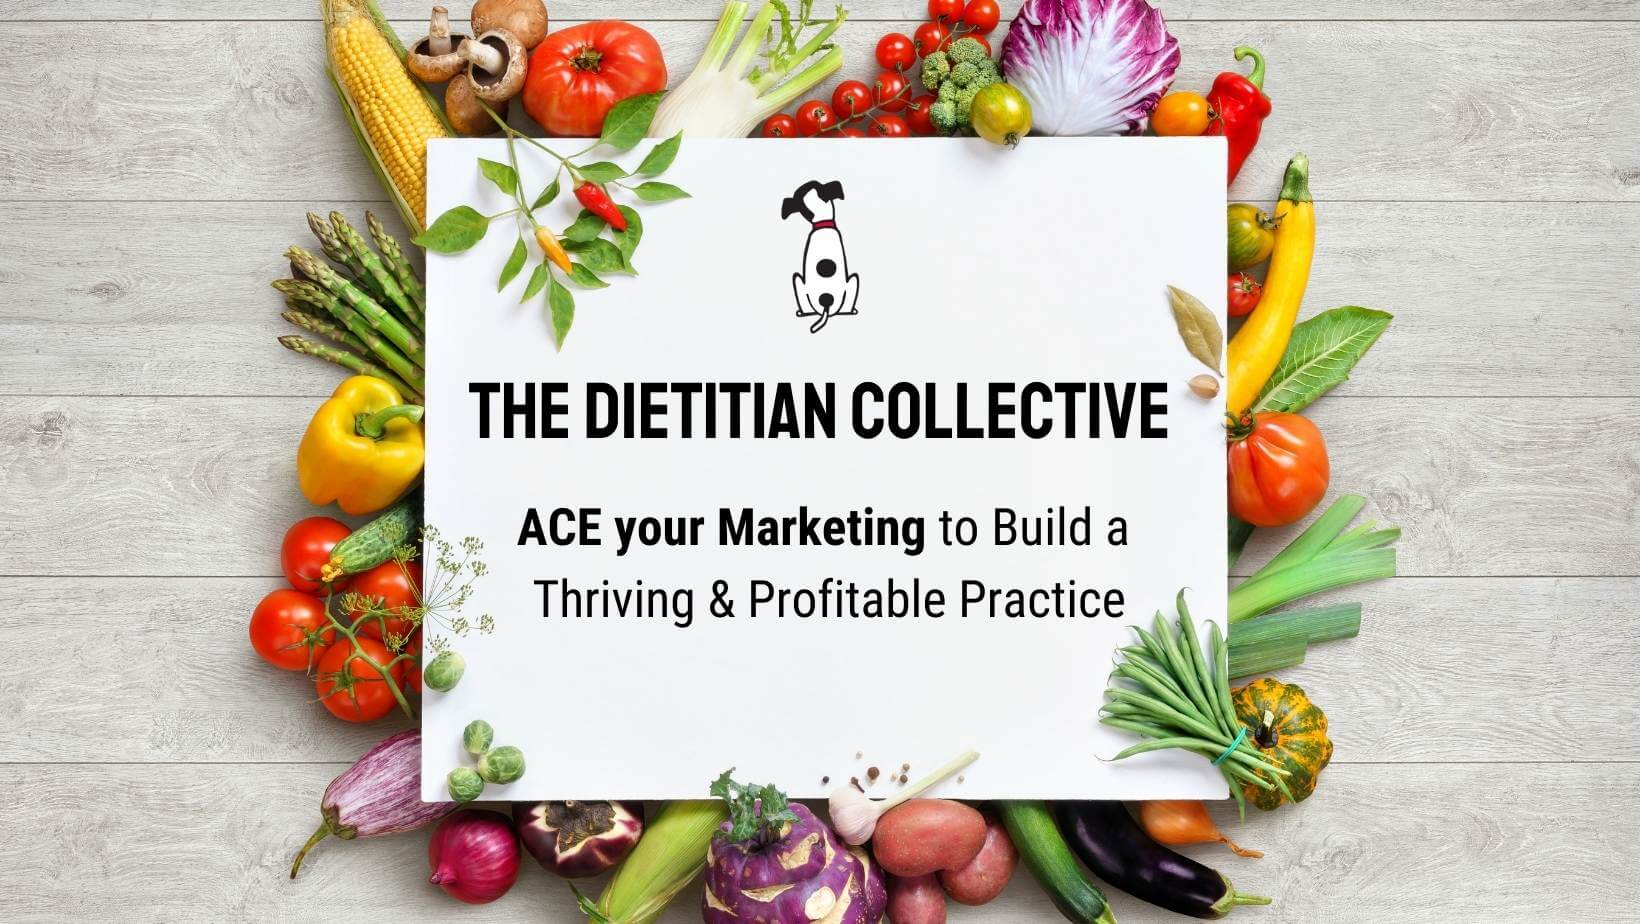 networking GRoup for dietitians